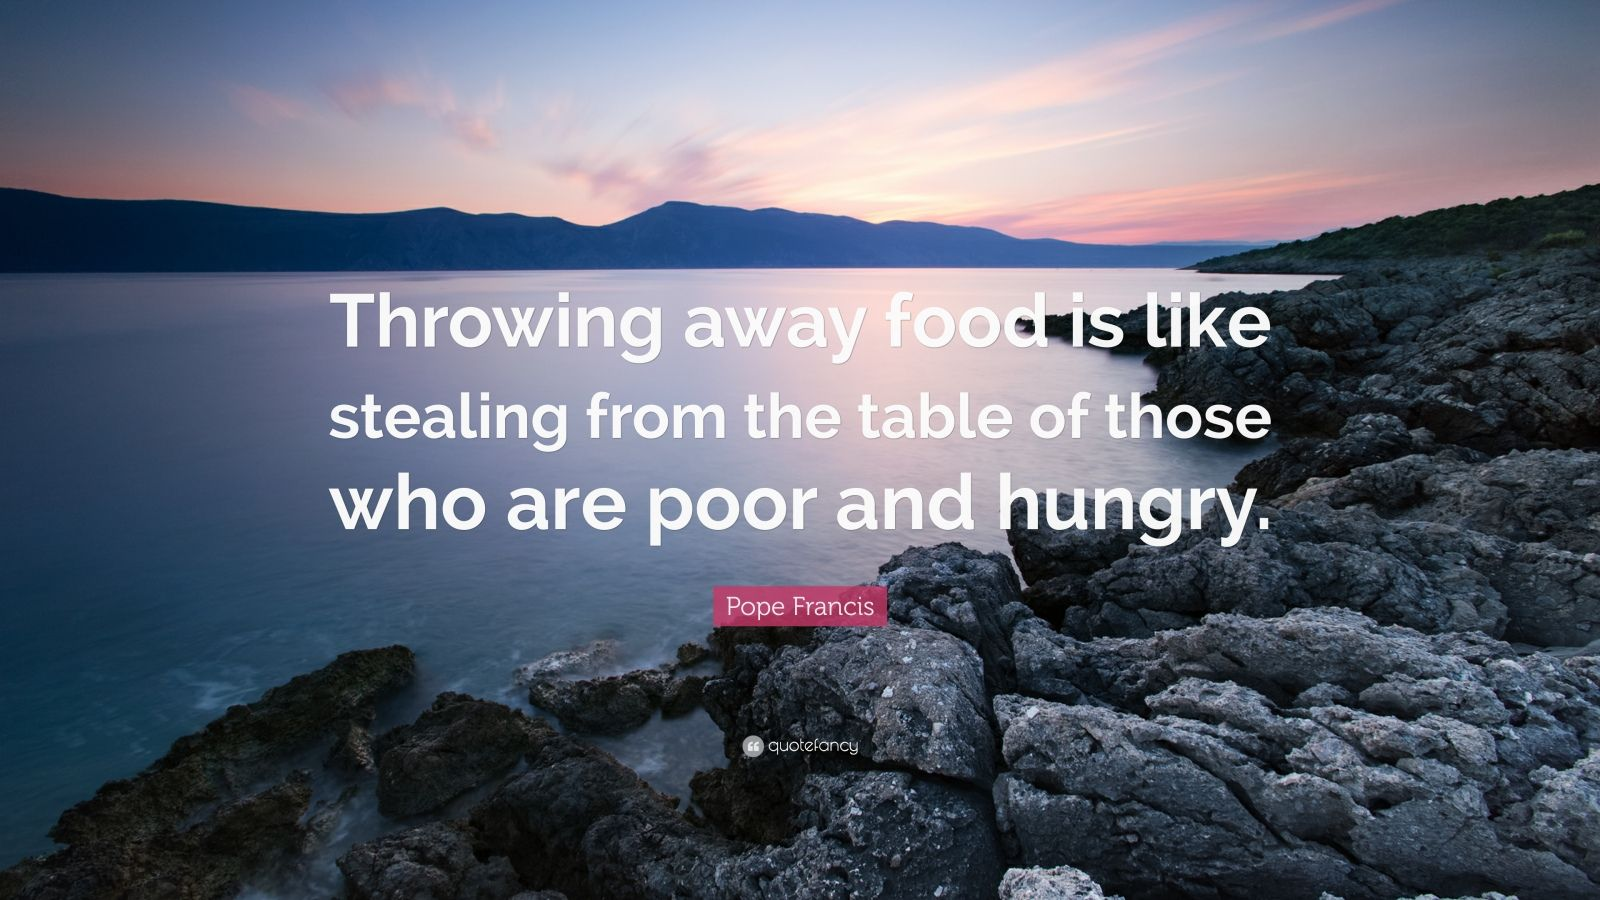 """Pope Francis Quote: """"Throwing away food is like stealing from the table of those who are poor and hungry."""""""